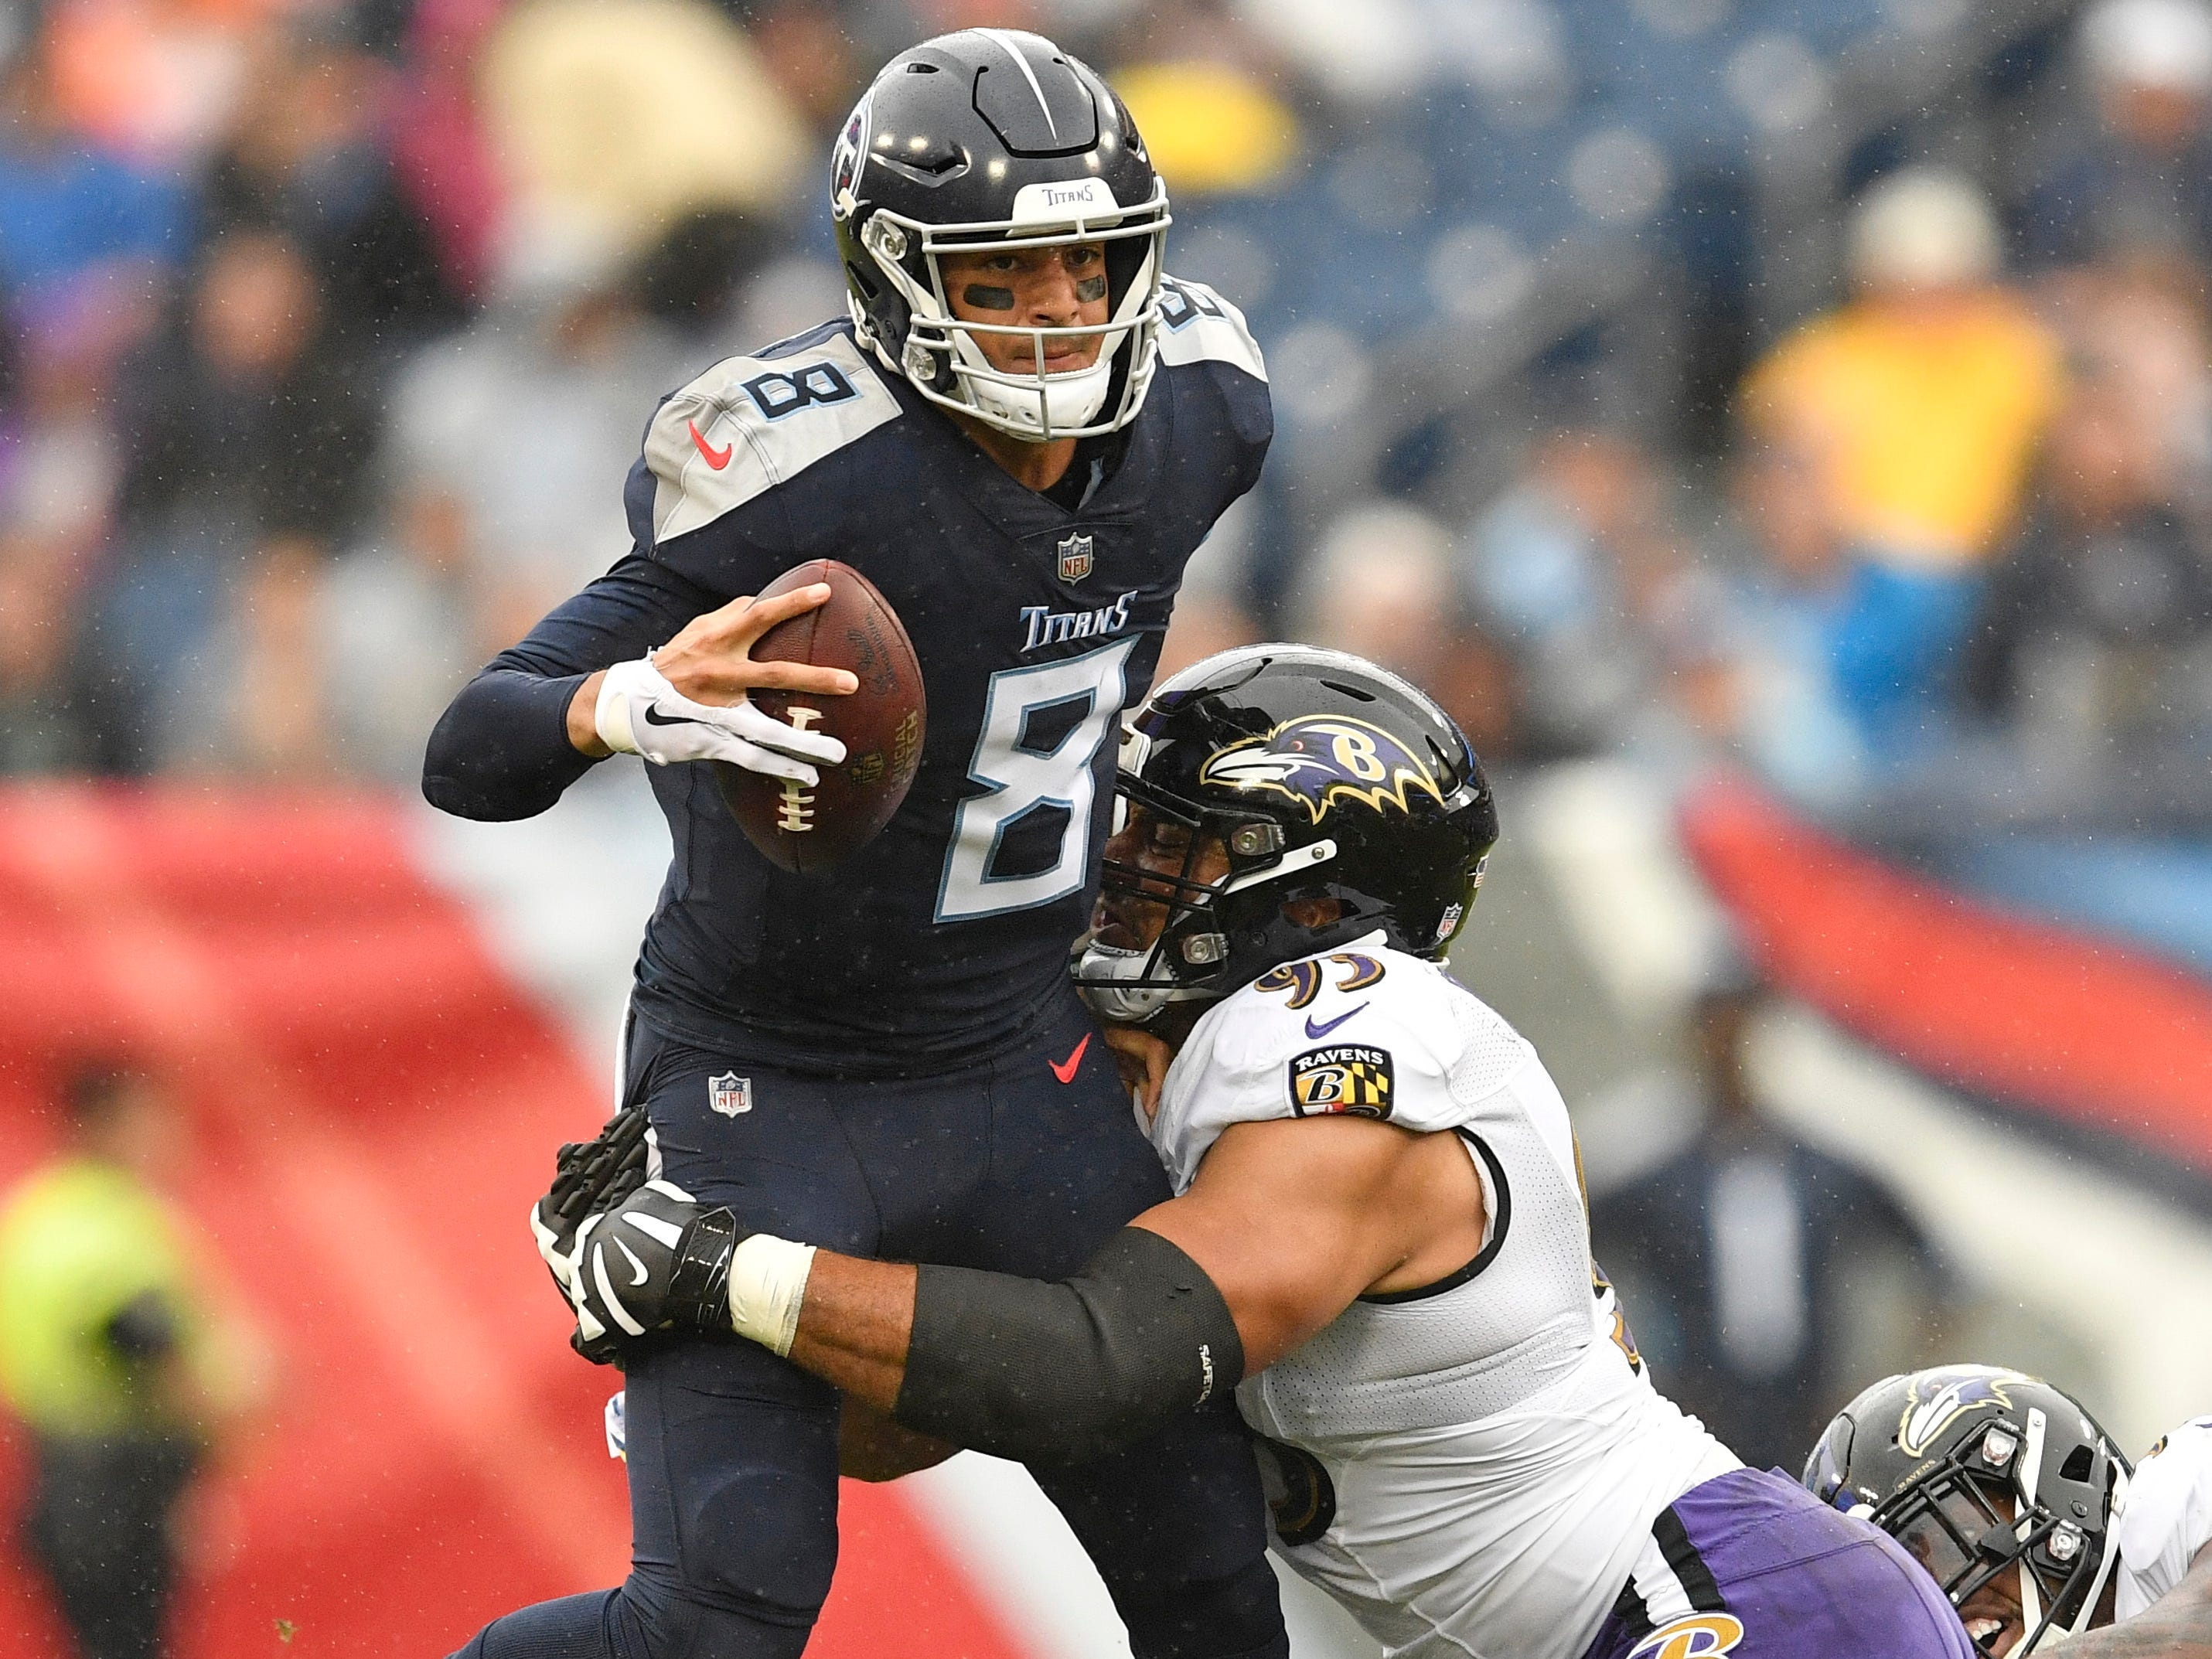 Titans quarterback Marcus Mariota (8) is brought down by Ravens defensive end Chris Wormley (93) in the first quarter at Nissan Stadium Sunday, Oct. 14, 2018, in Nashville, Tenn.